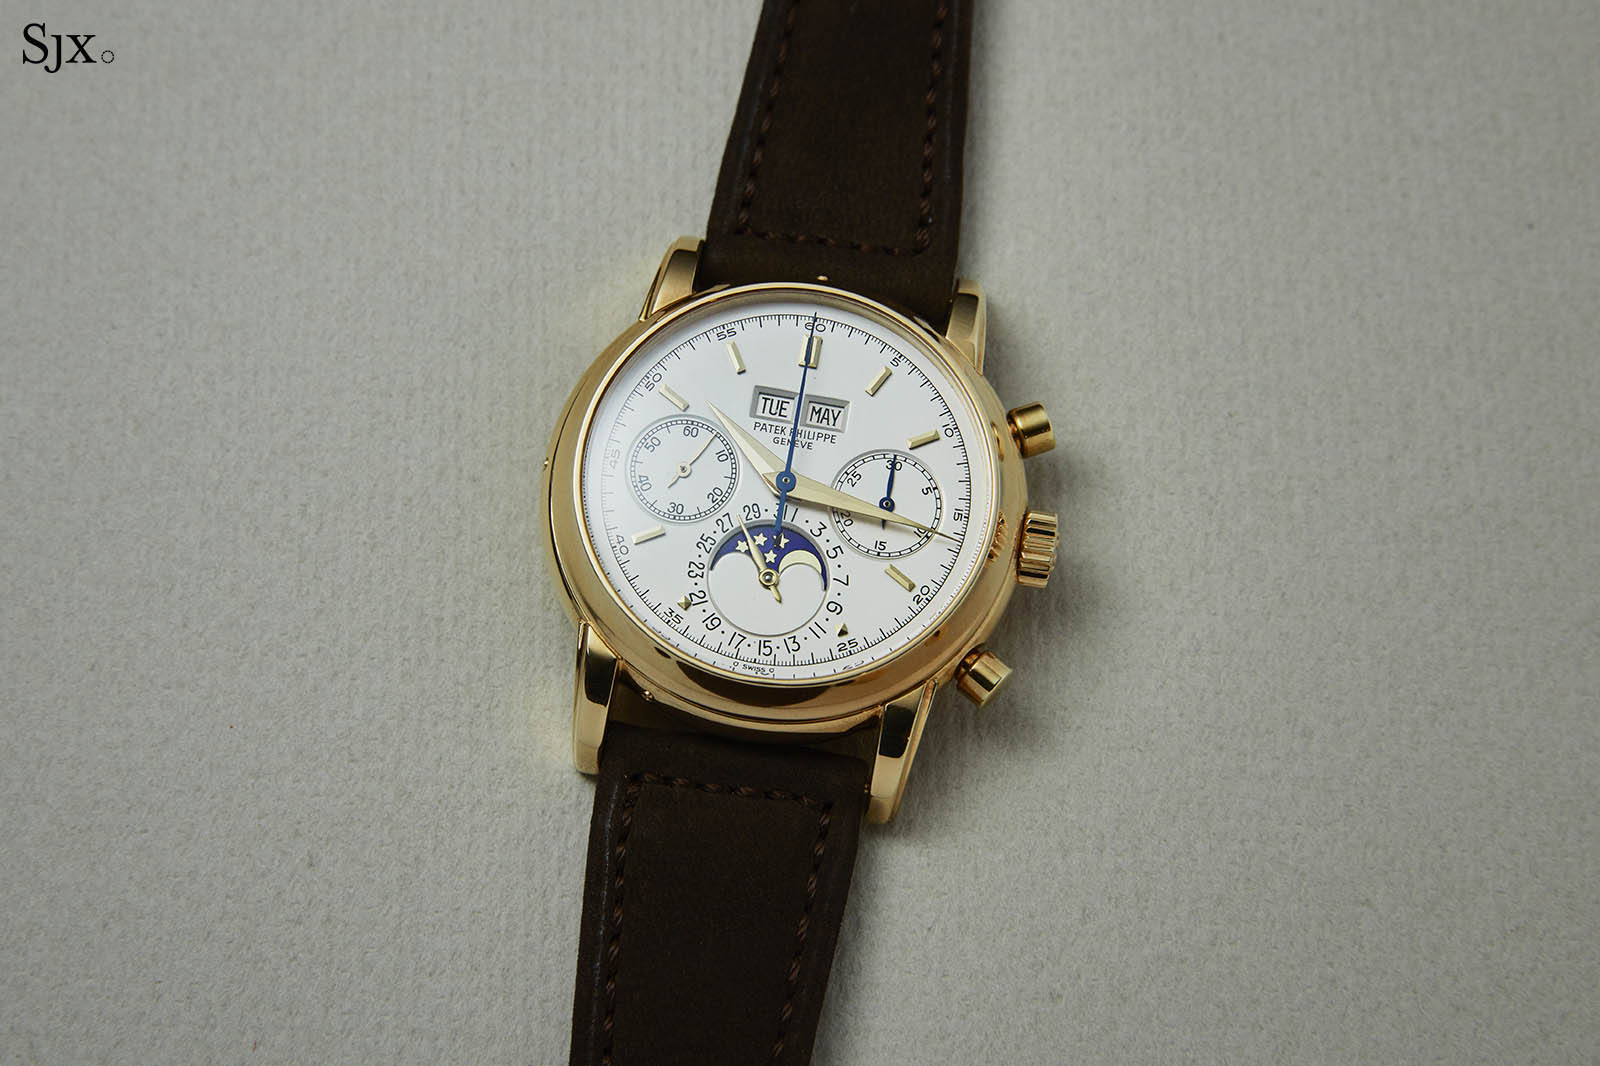 Patek Philippe ref. 2499 4th series